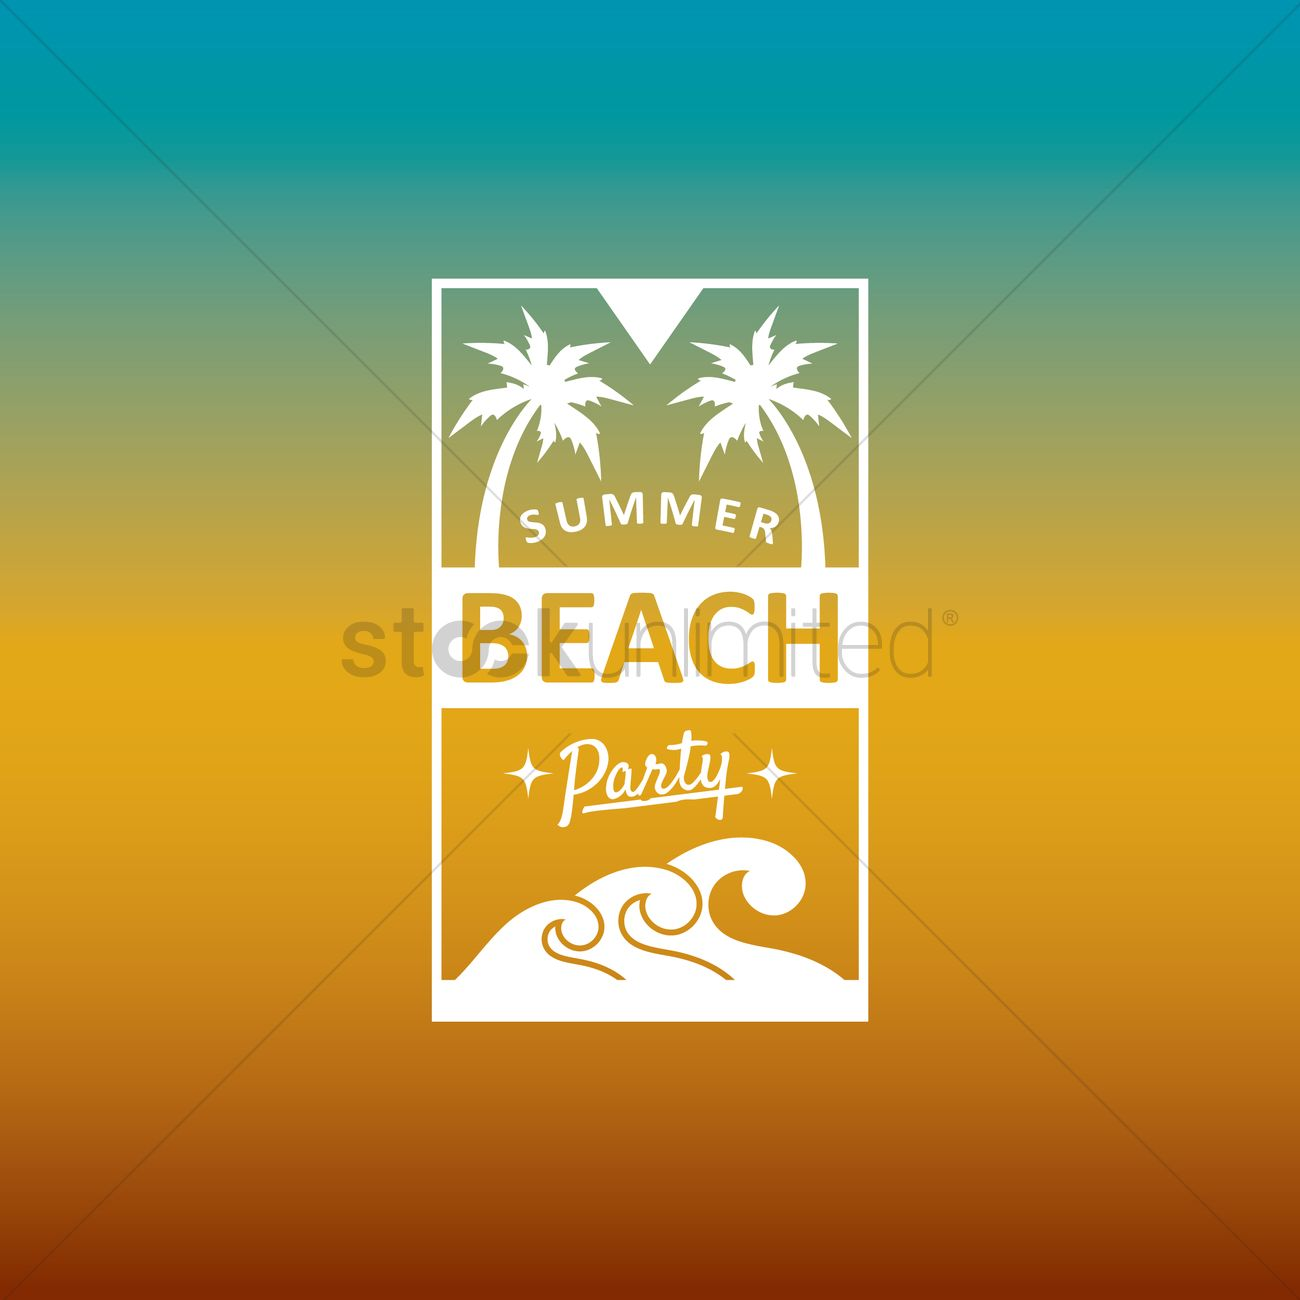 Summer Beach Party Design Vector Graphic